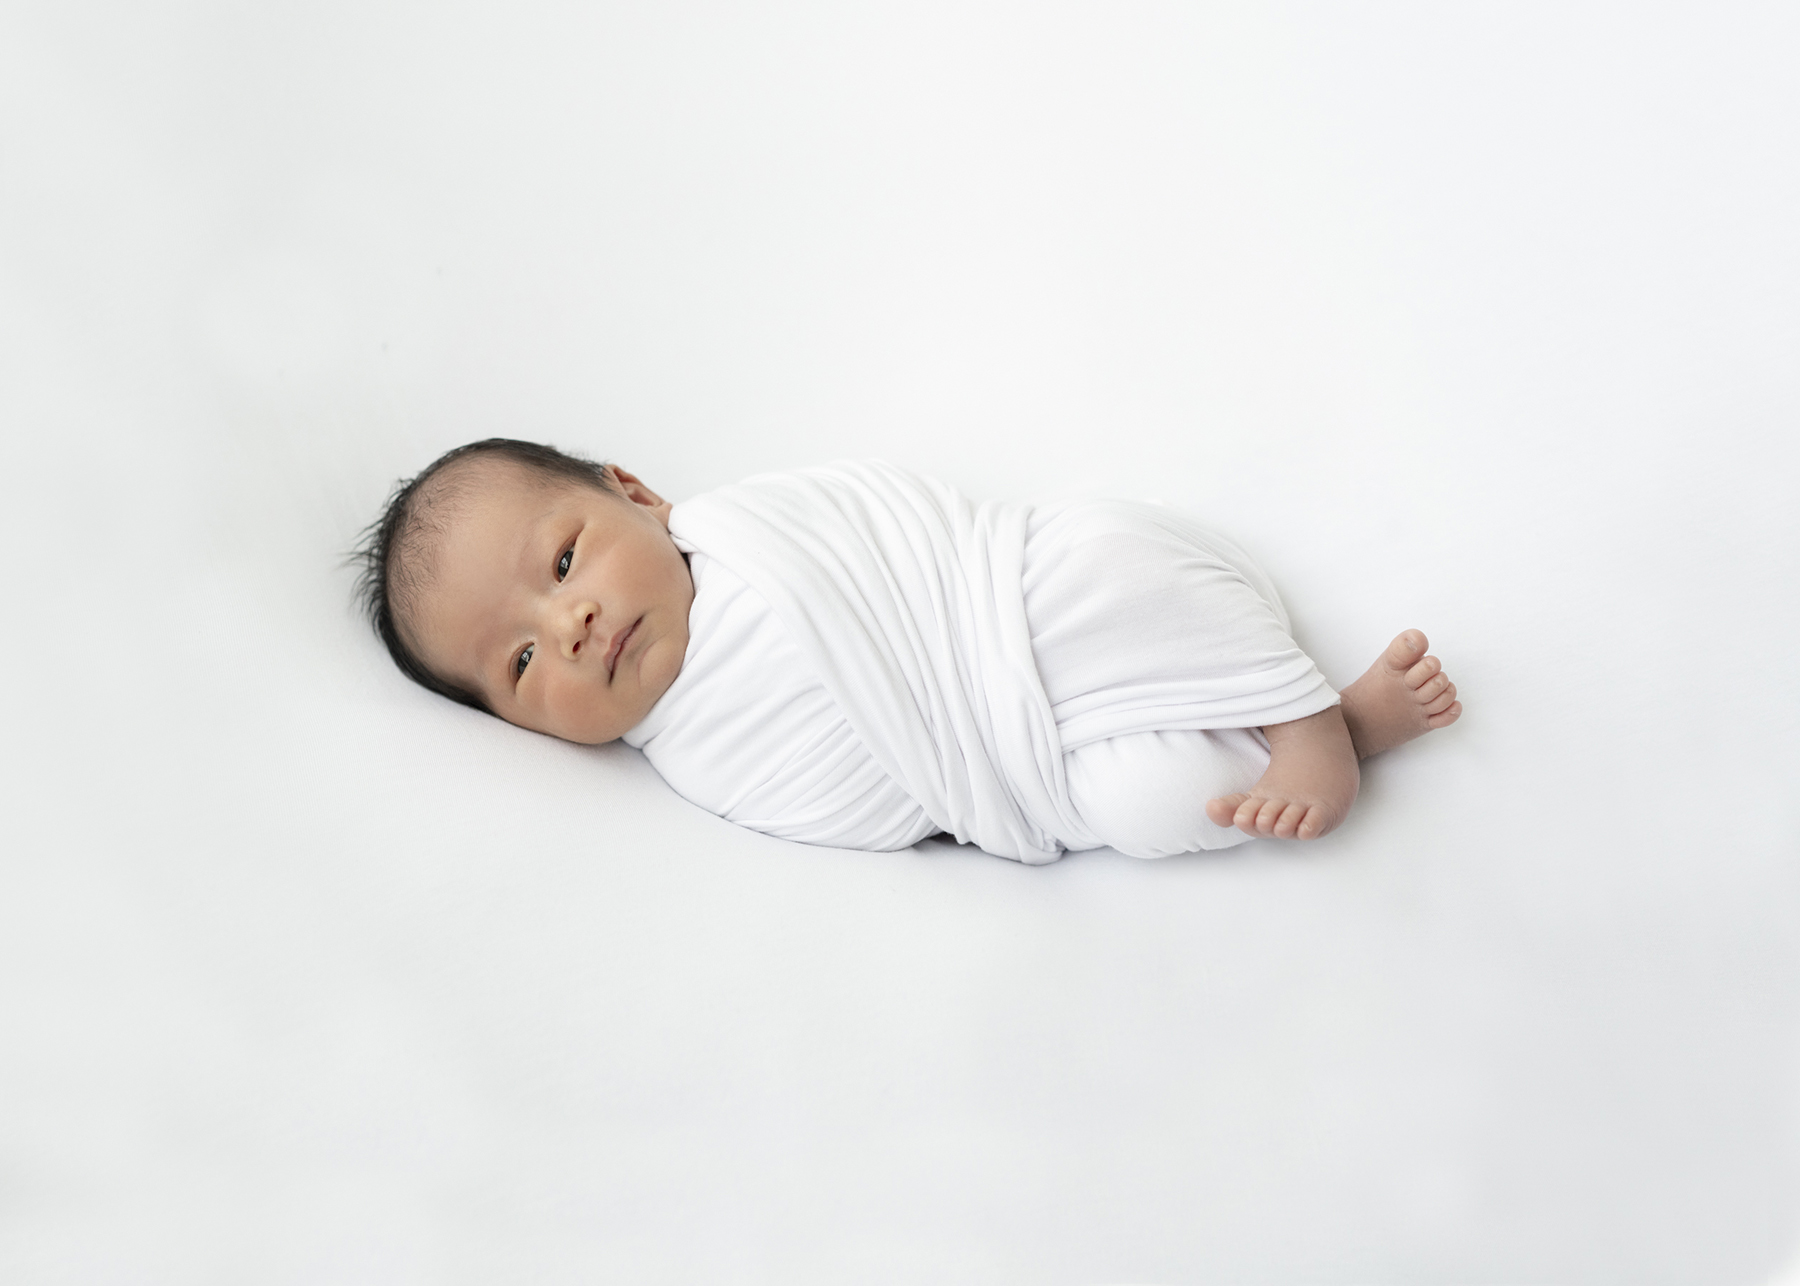 fine art new born photography hong kong